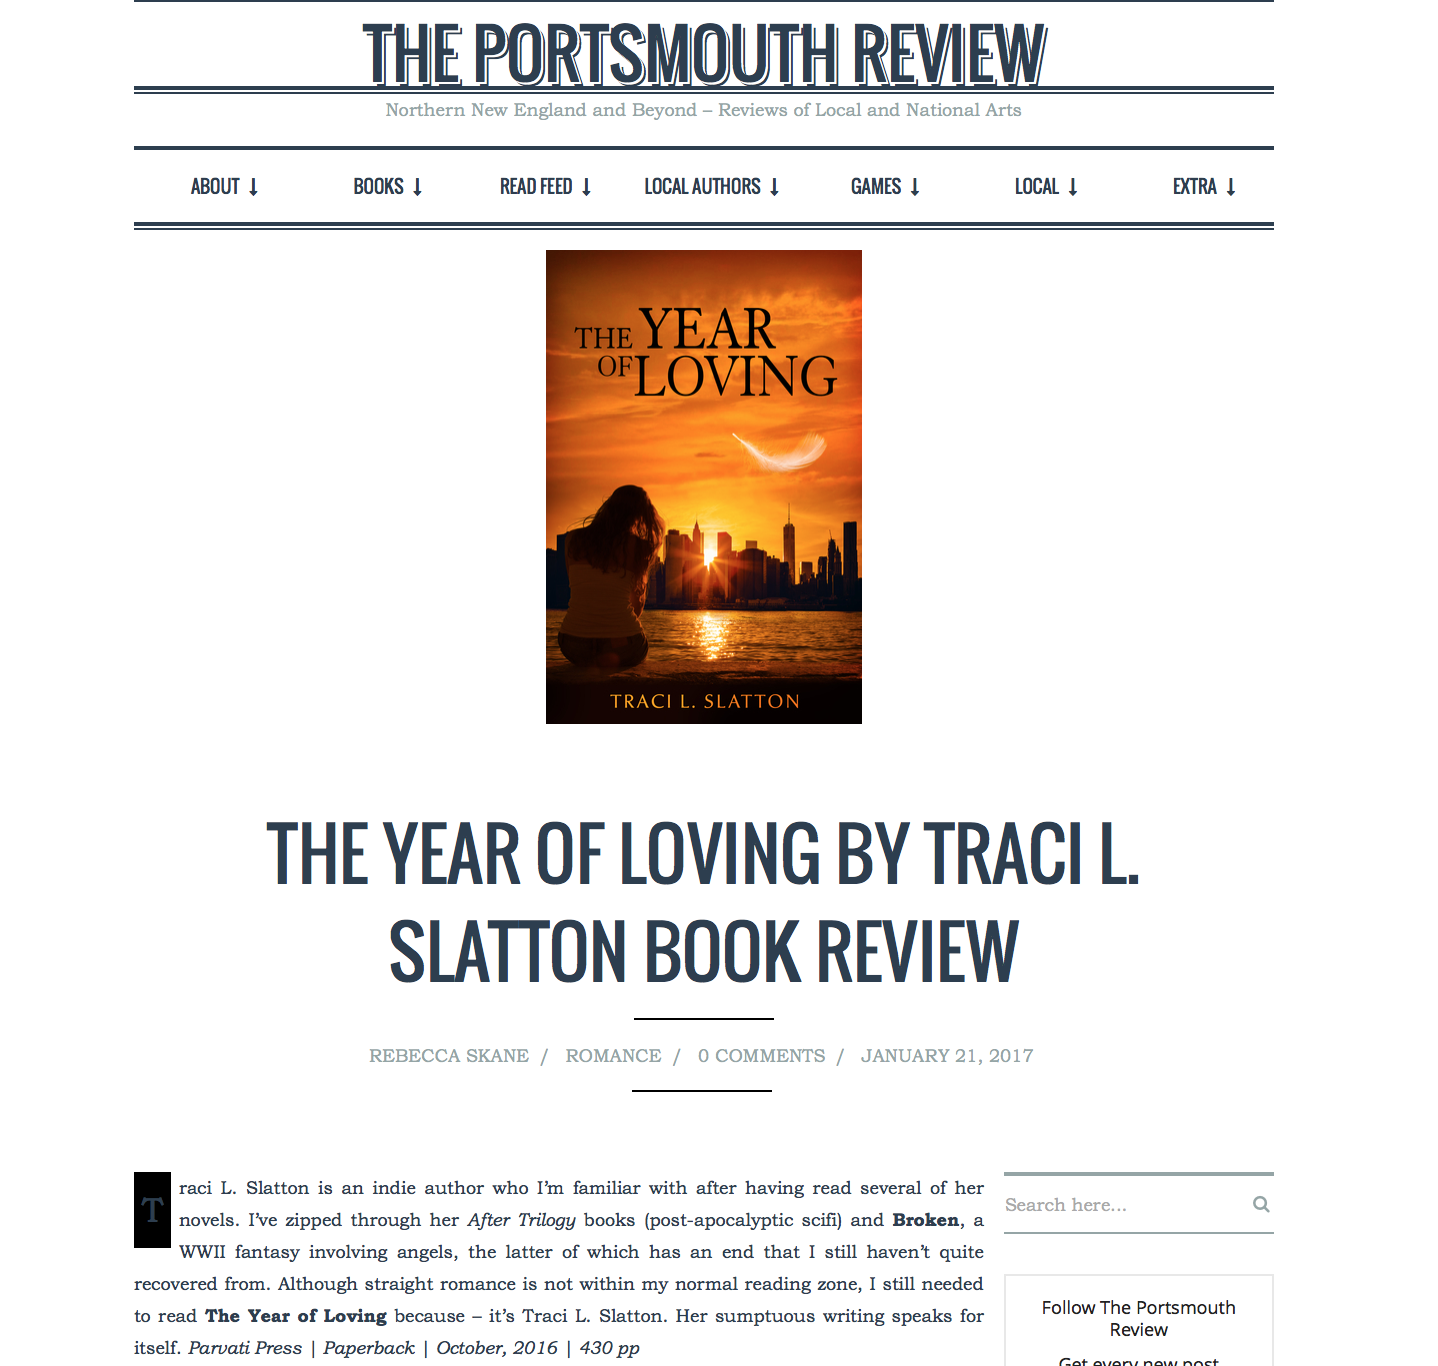 The Portsmouth Review on THE YEAR OF LOVING